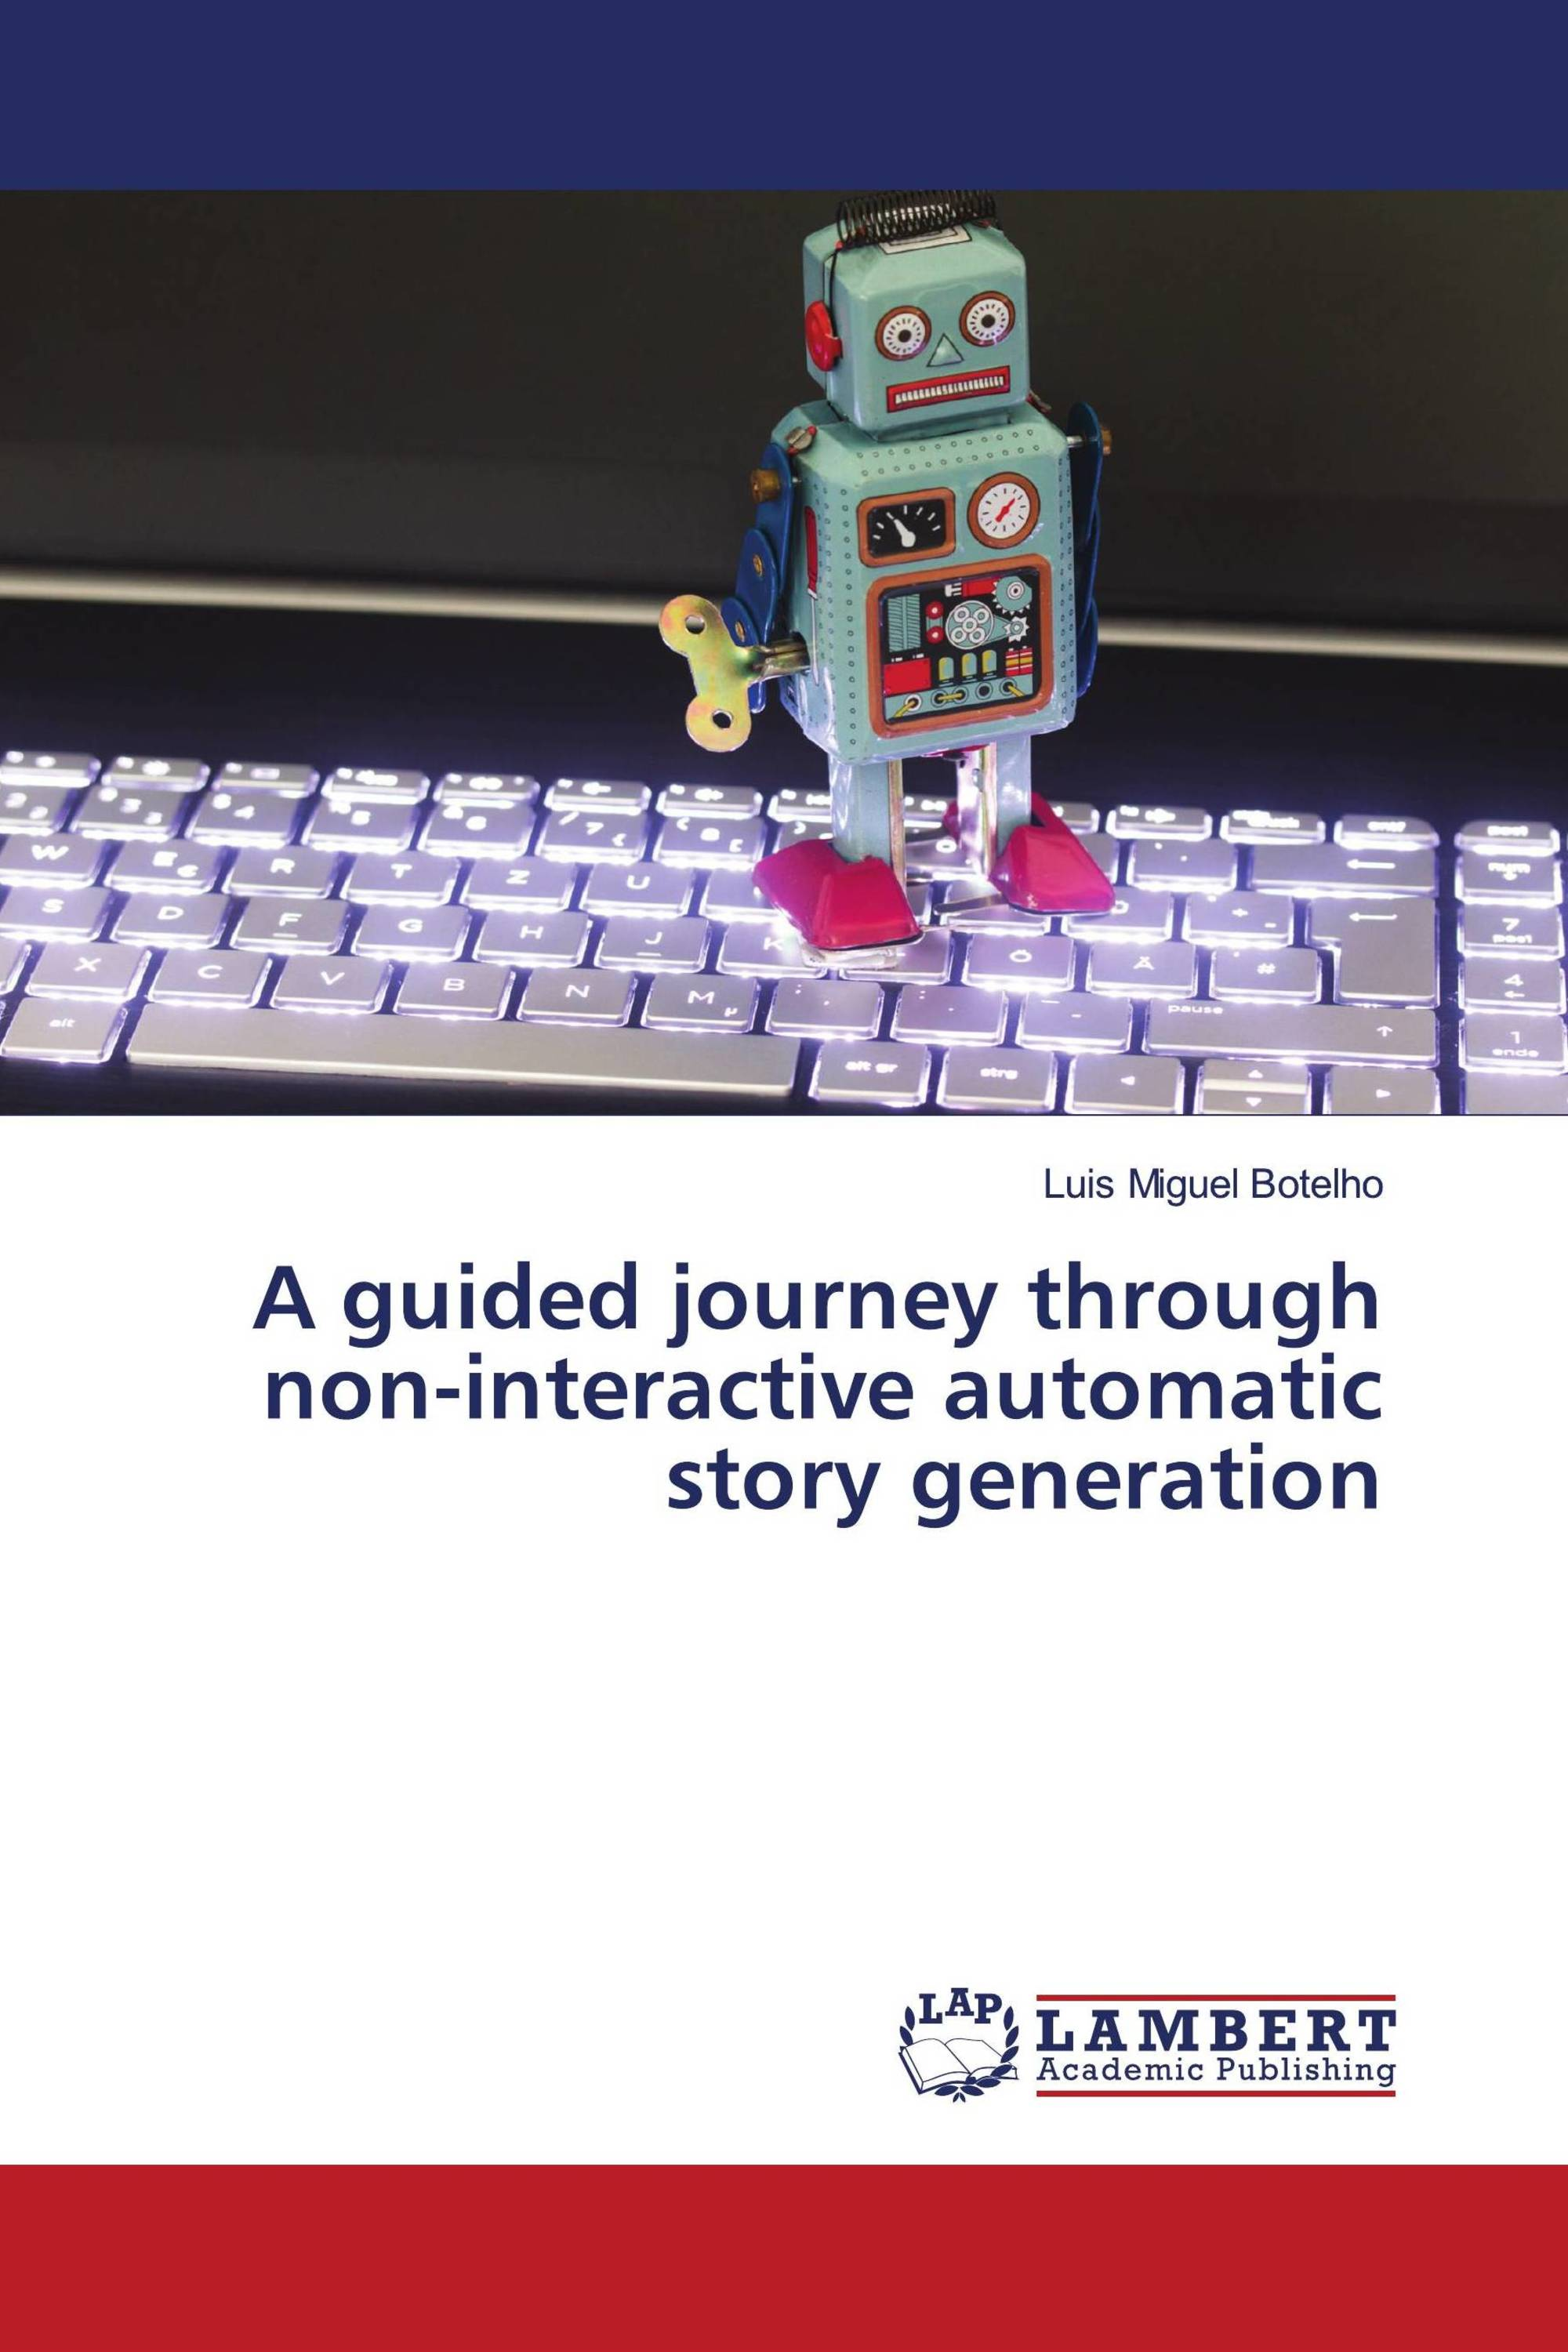 A guided journey through non-interactive automatic story generation